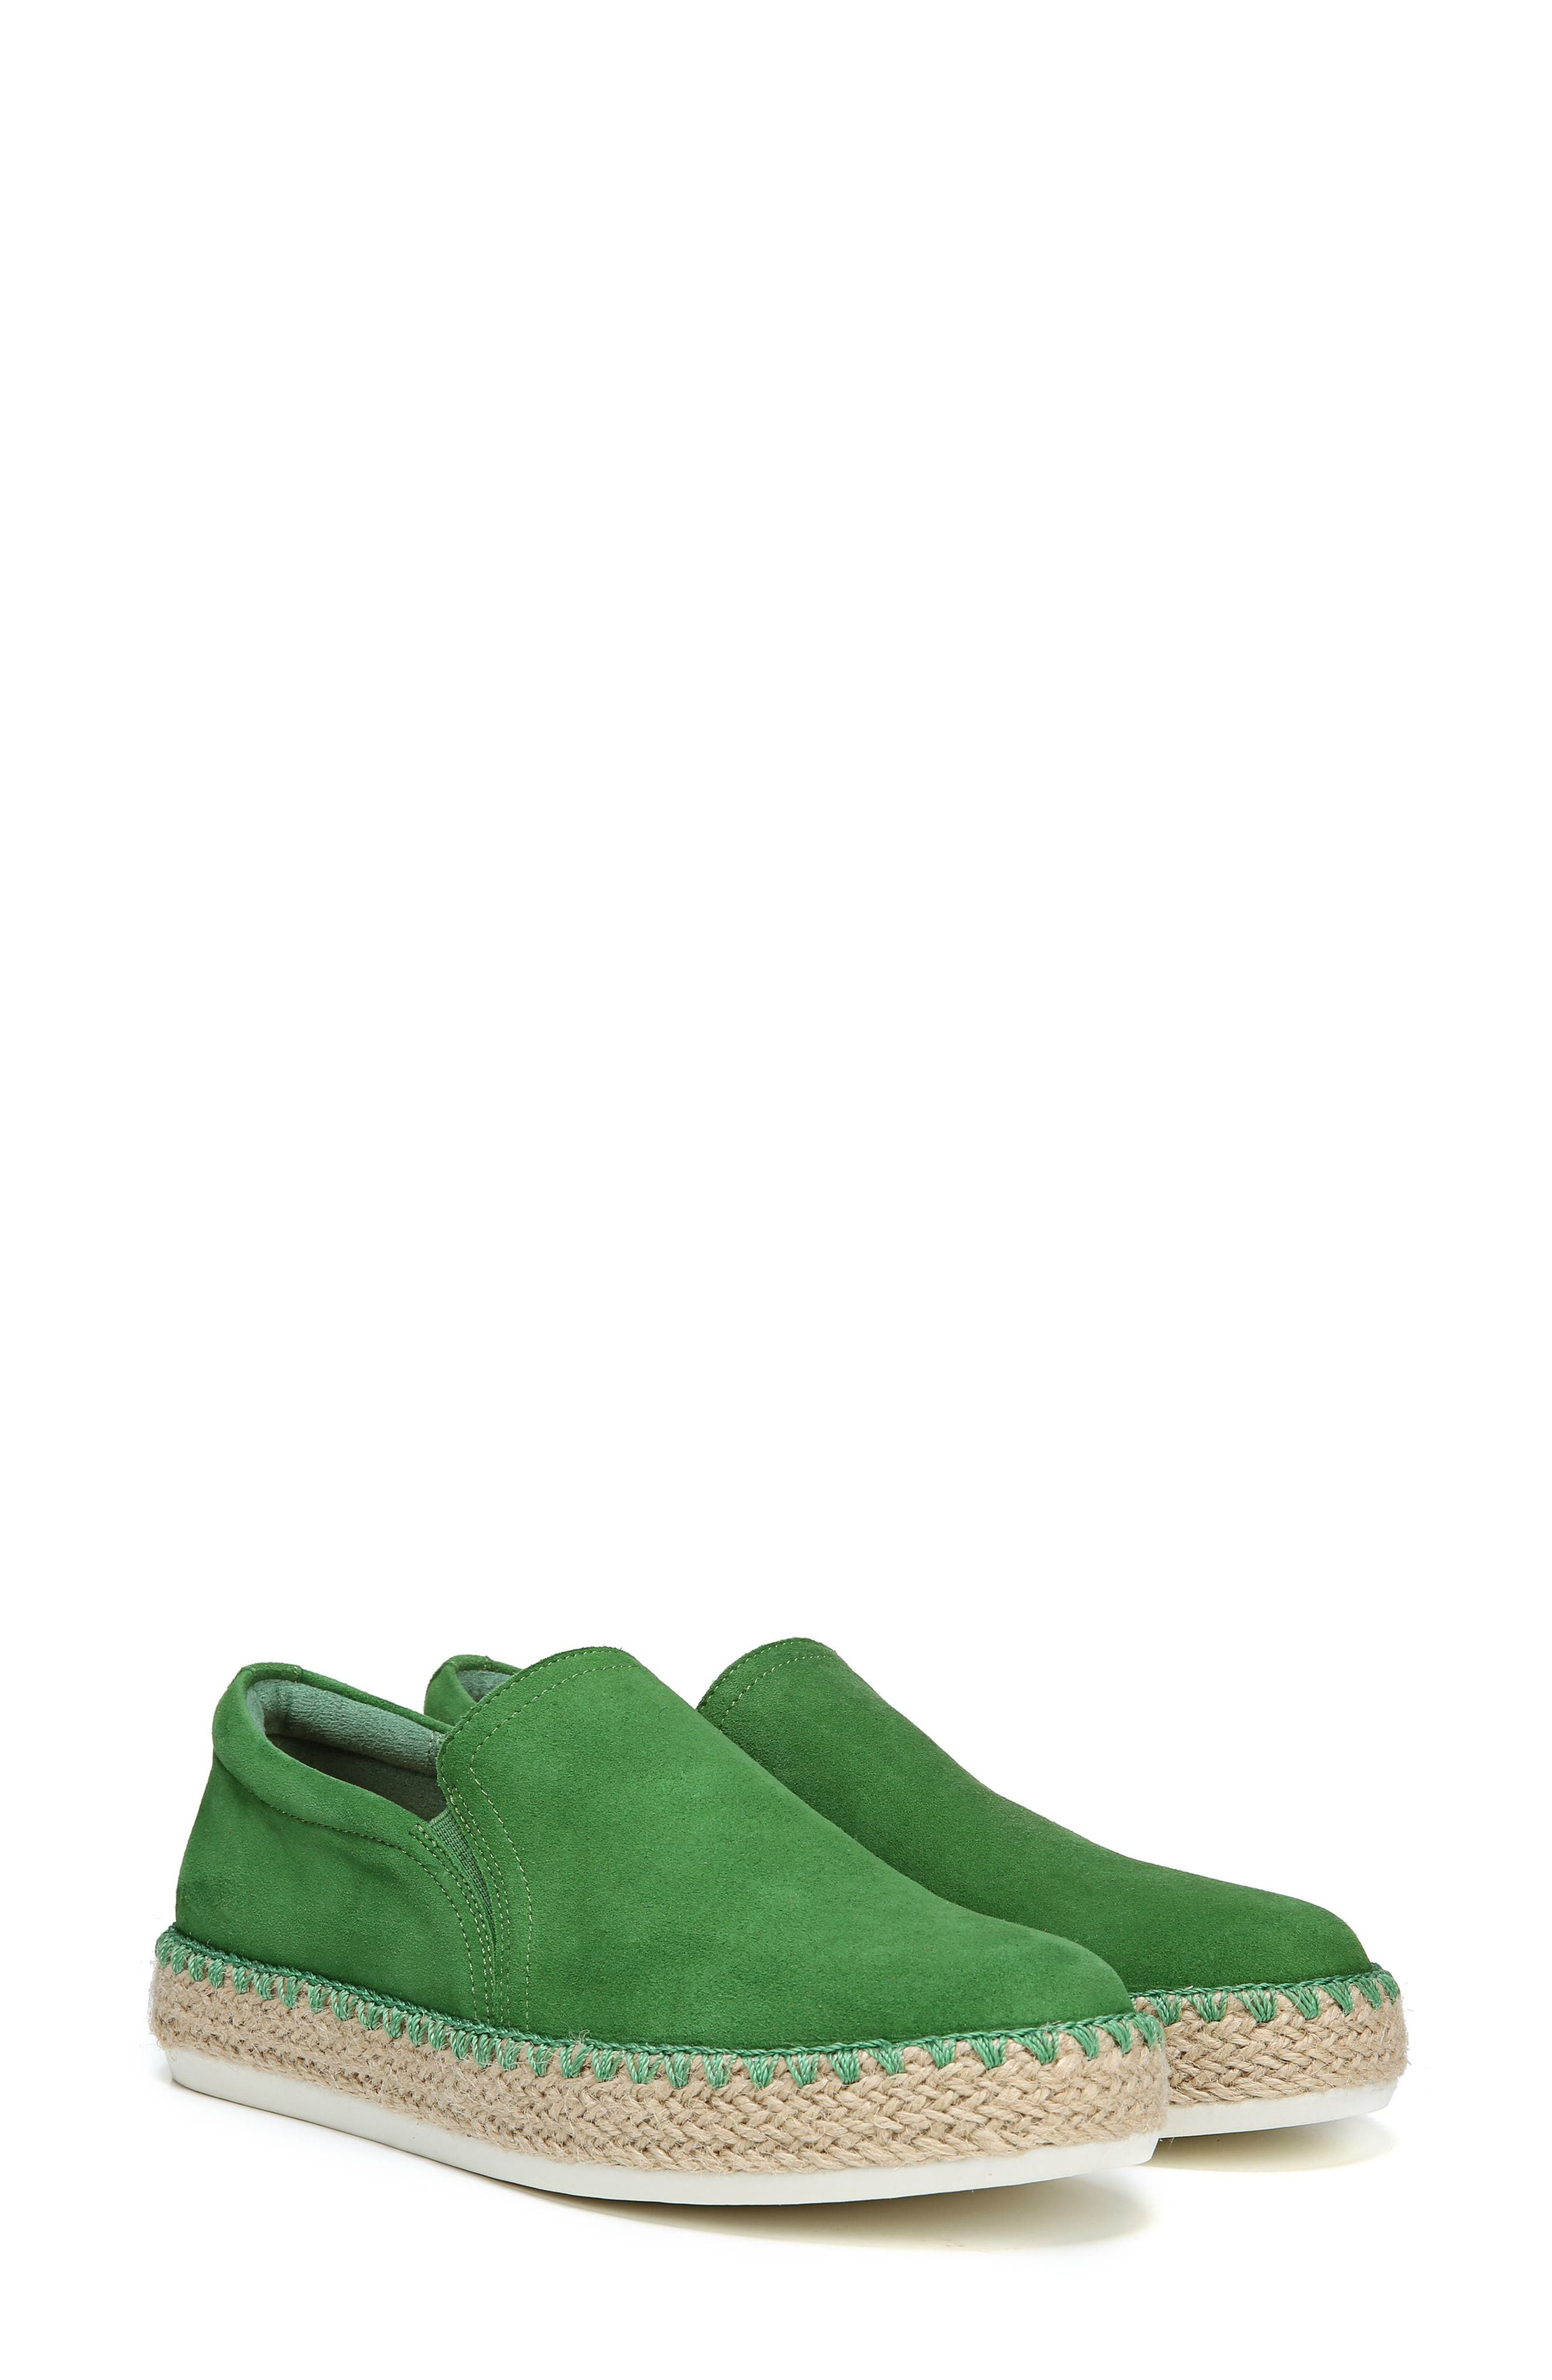 Sunnie Slip-On Sneaker,                             Main thumbnail 1, color,                             GREEN SUEDE